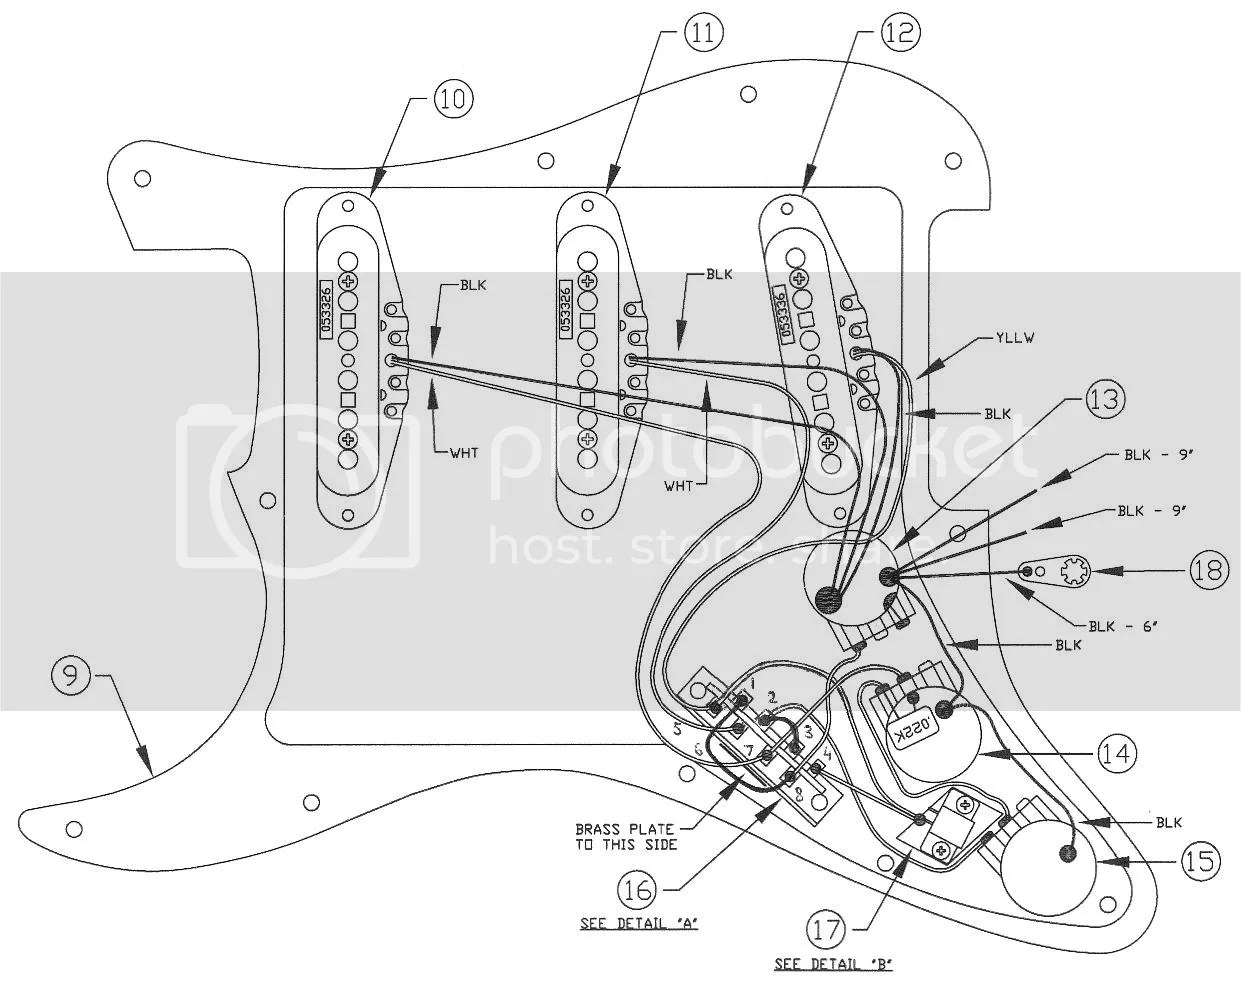 Fender Deluxe Players Strat Wiring Diagram